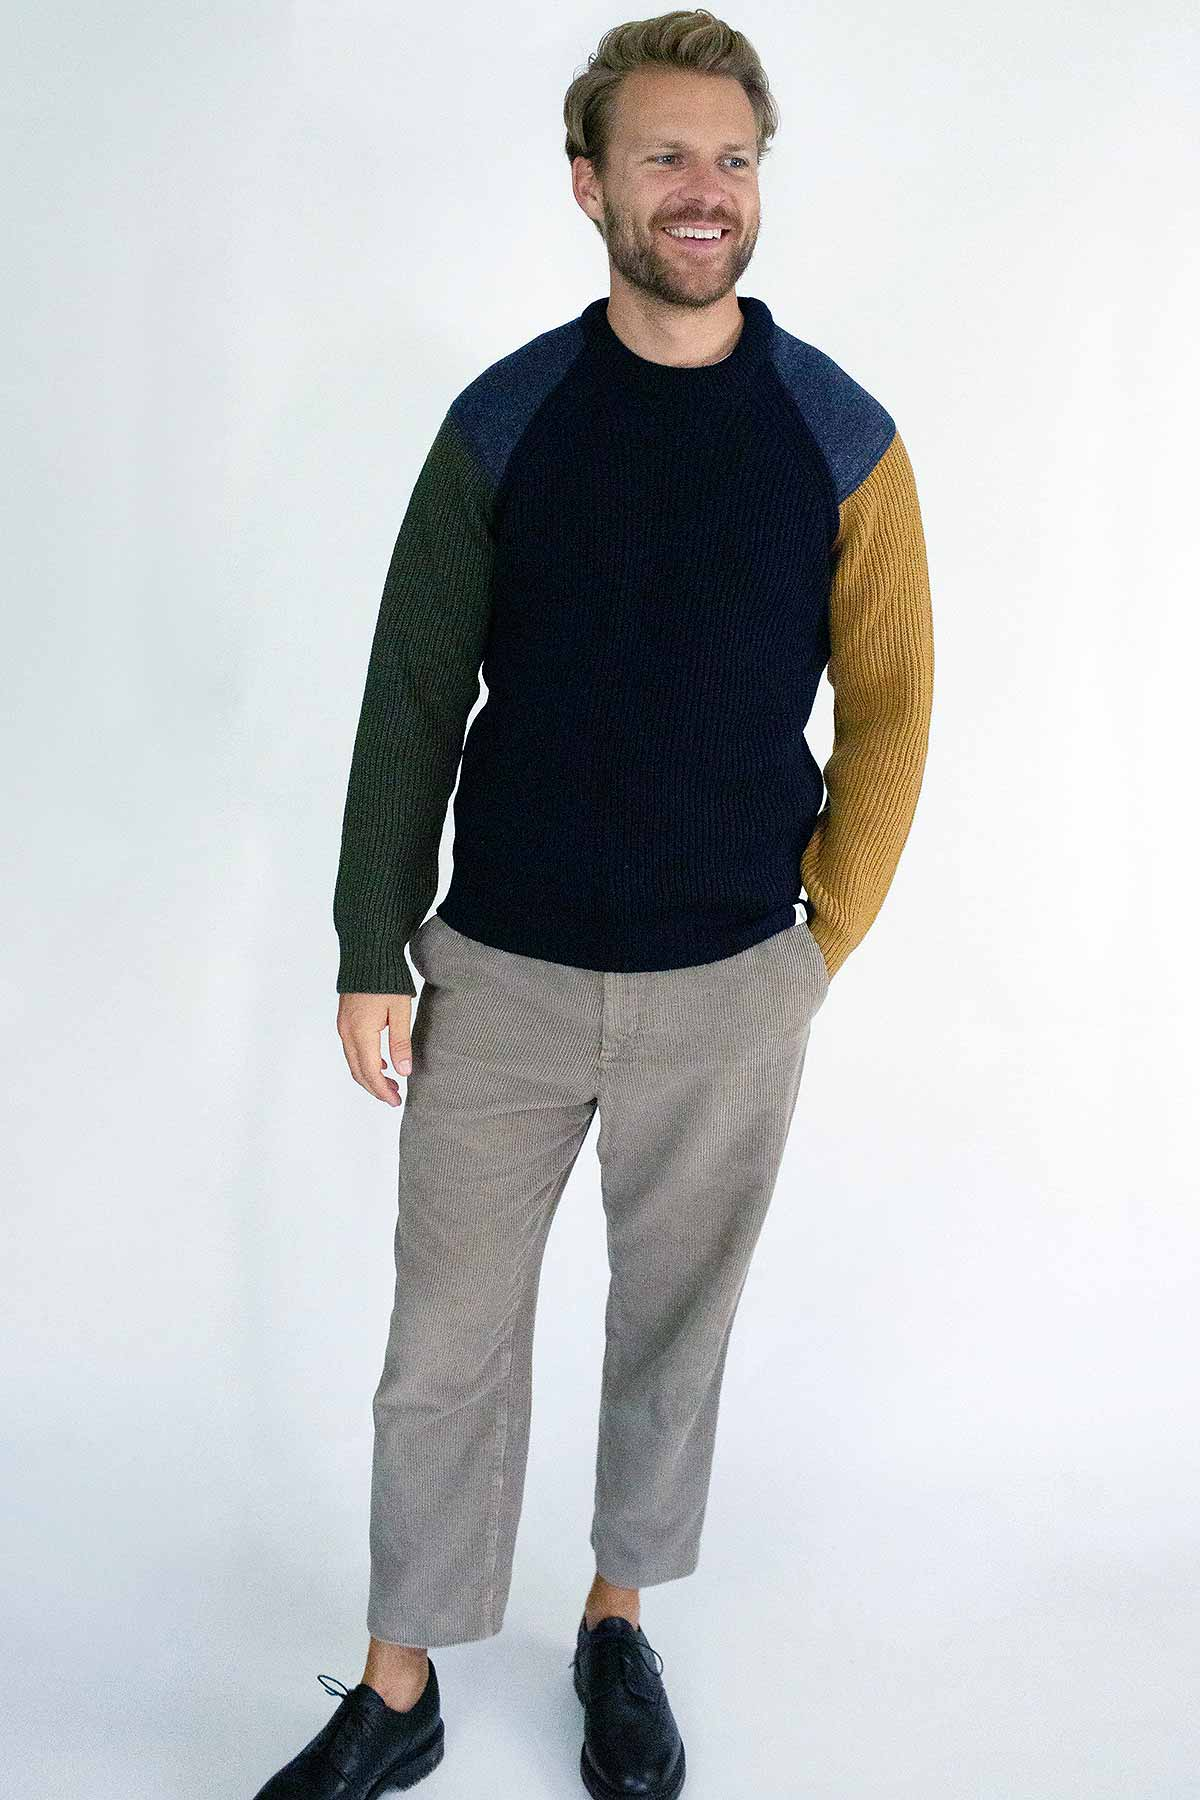 front view man wearing jumper